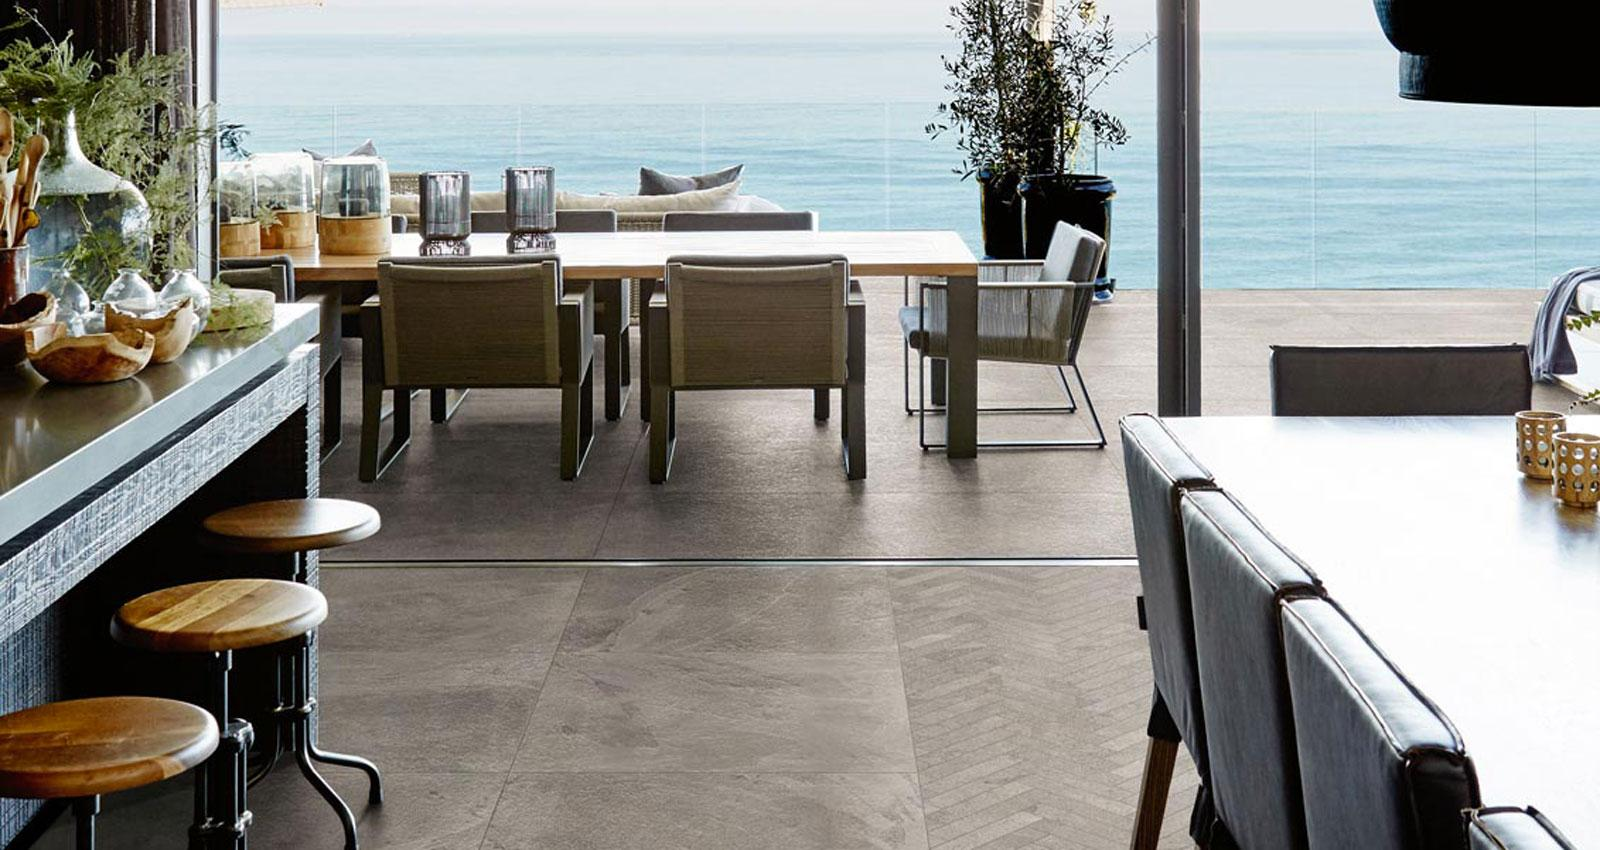 Mystone ardesia - Stone Effect - Indoor and Outdoor